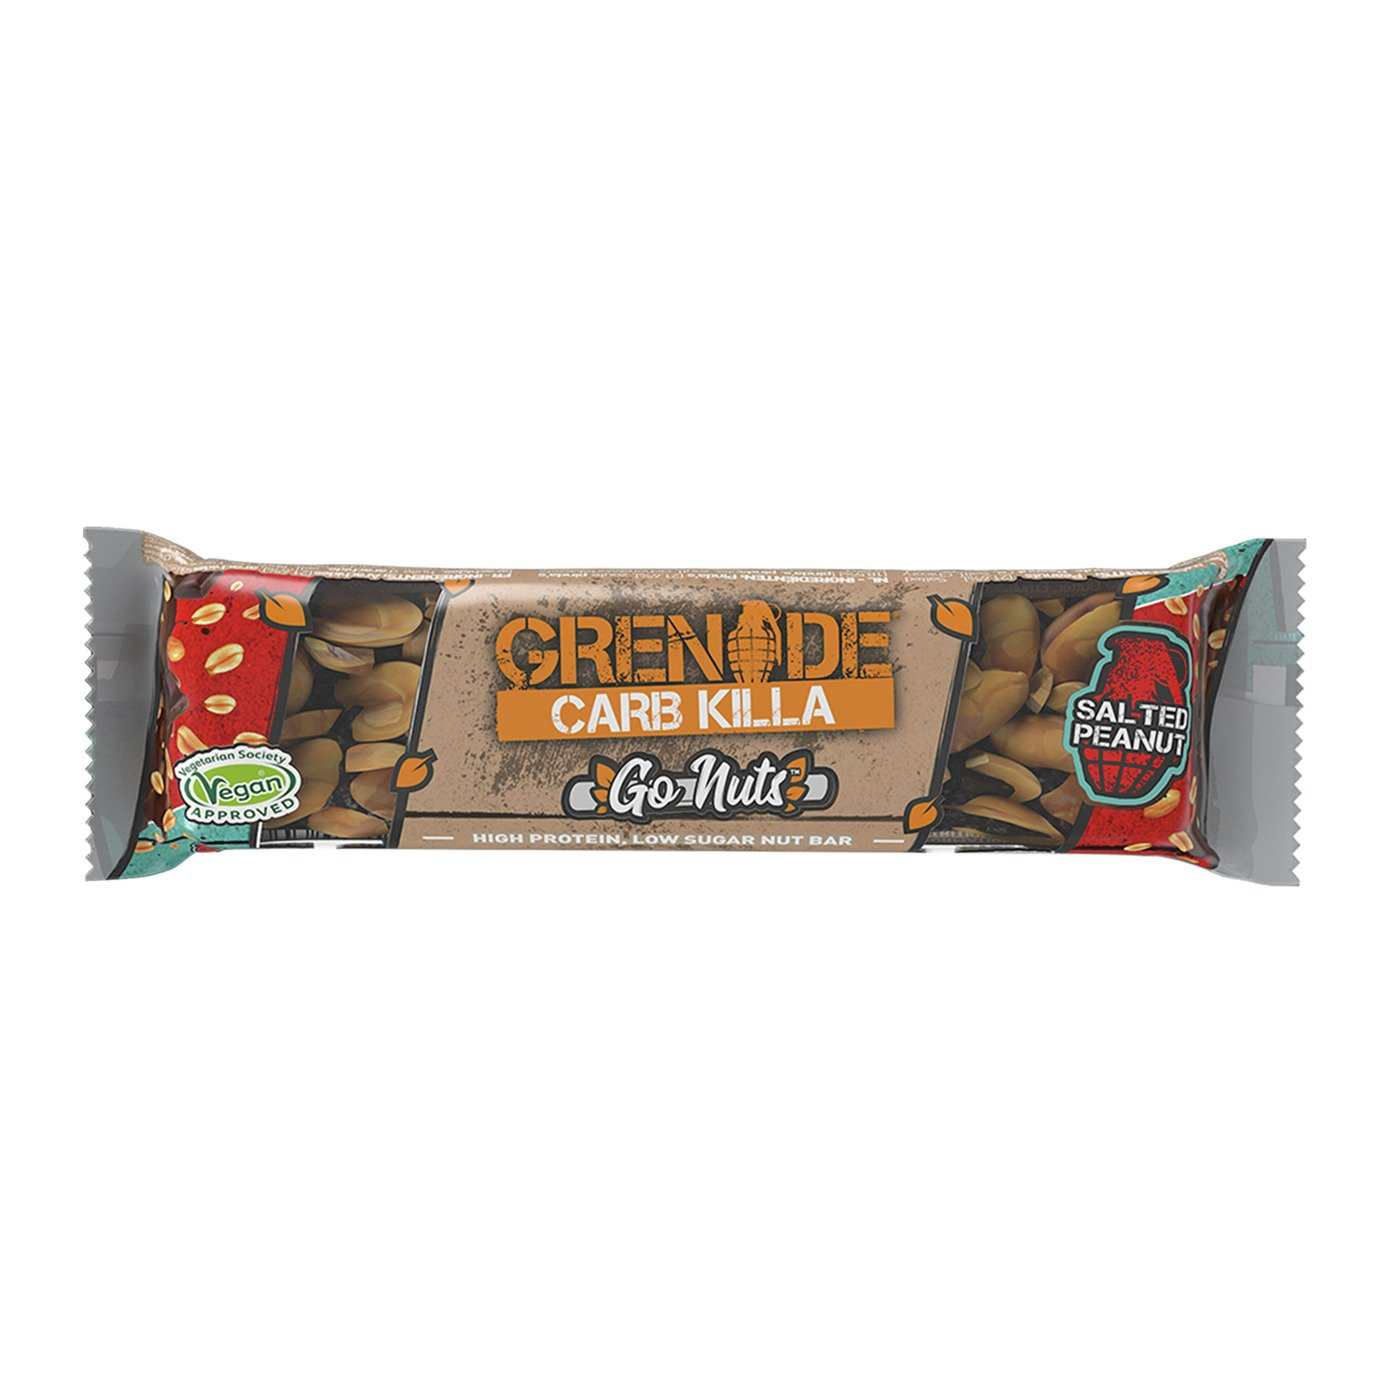 Grenade Carb Killa Go Nuts Vegan Salted Peanut